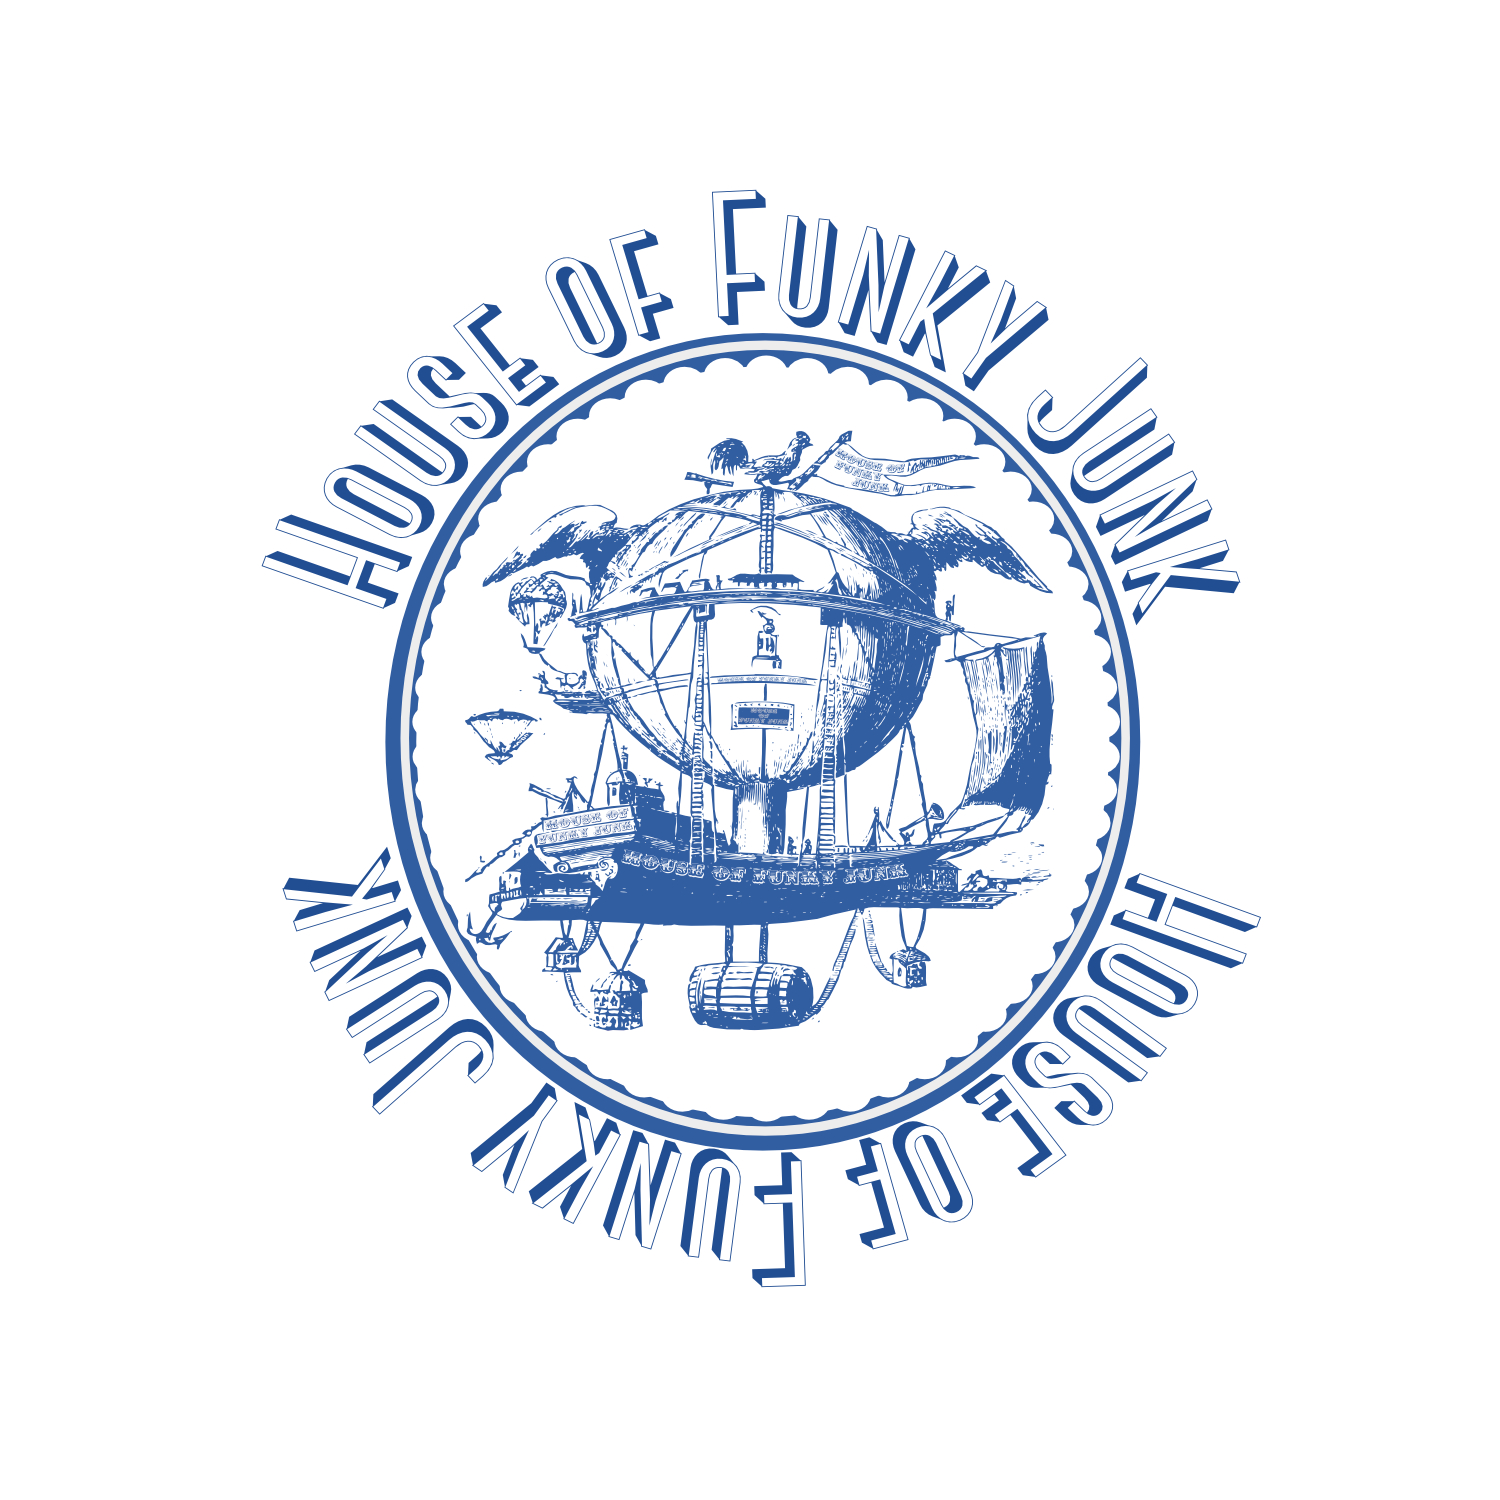 House of Funky Junk